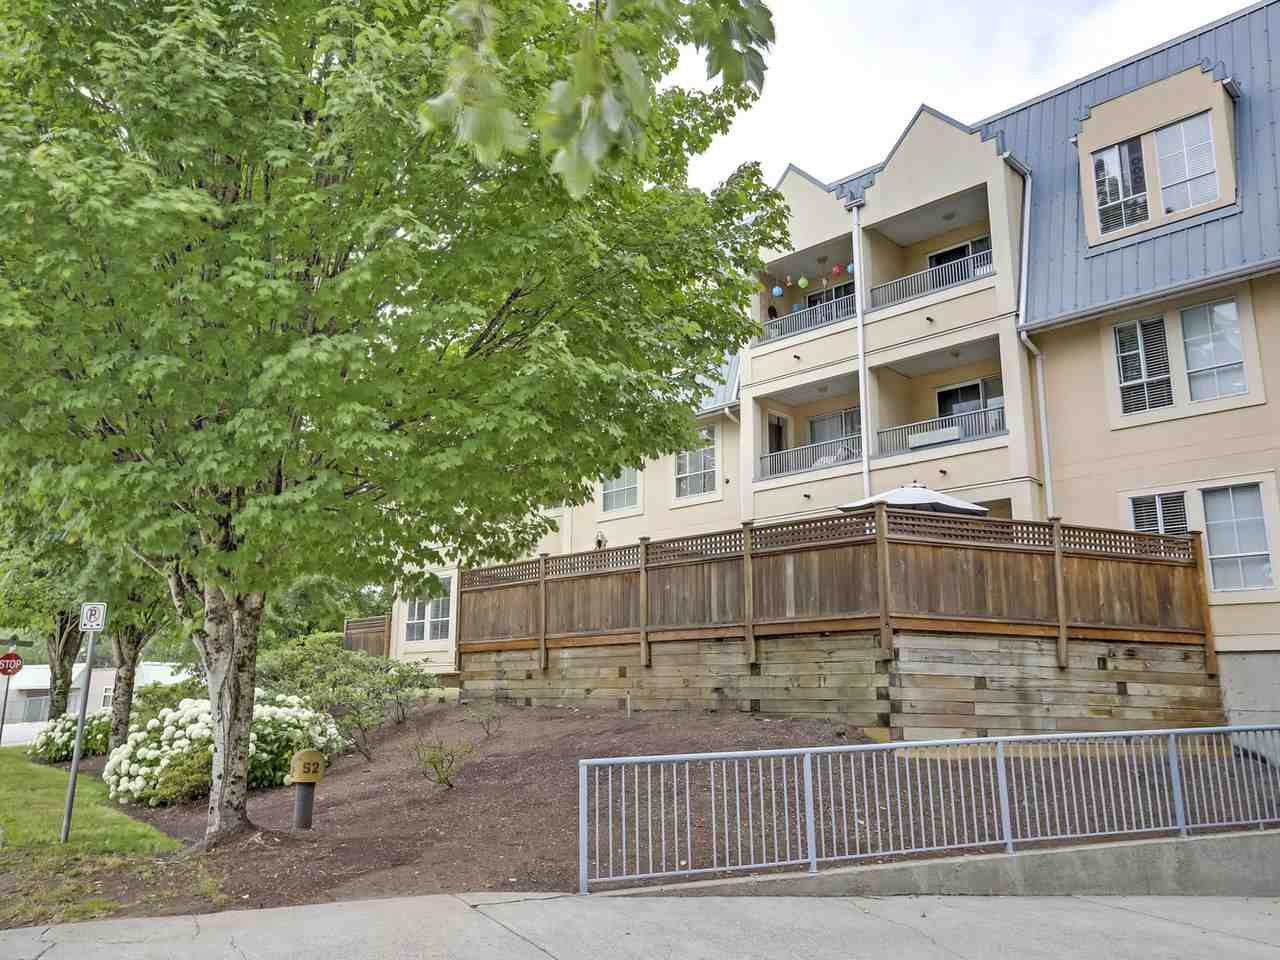 Photo 2: Photos: 107 295 SCHOOLHOUSE Street in Coquitlam: Maillardville Condo for sale : MLS®# R2286753